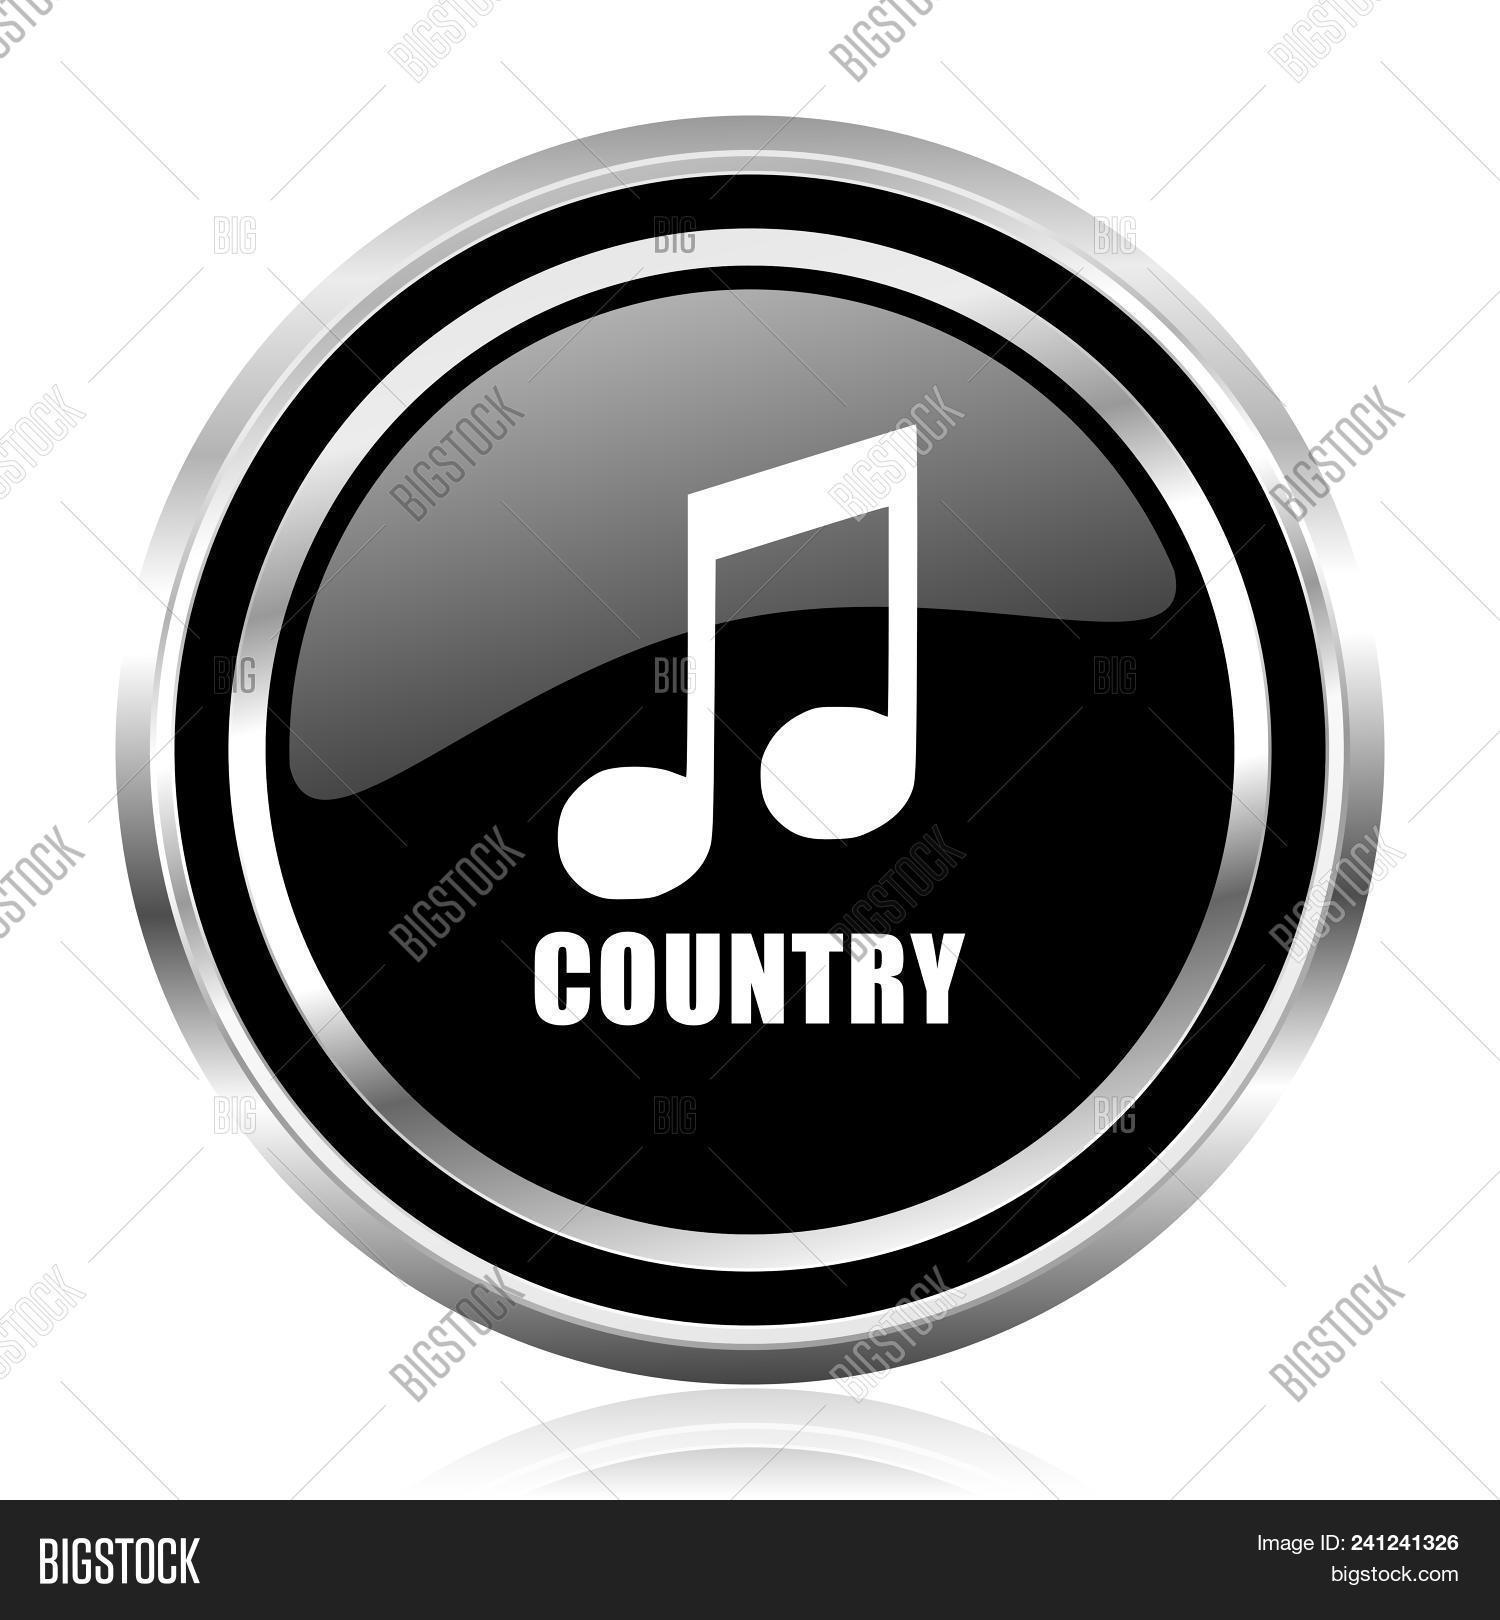 Music Country Black Image & Photo (Free Trial) | Bigstock